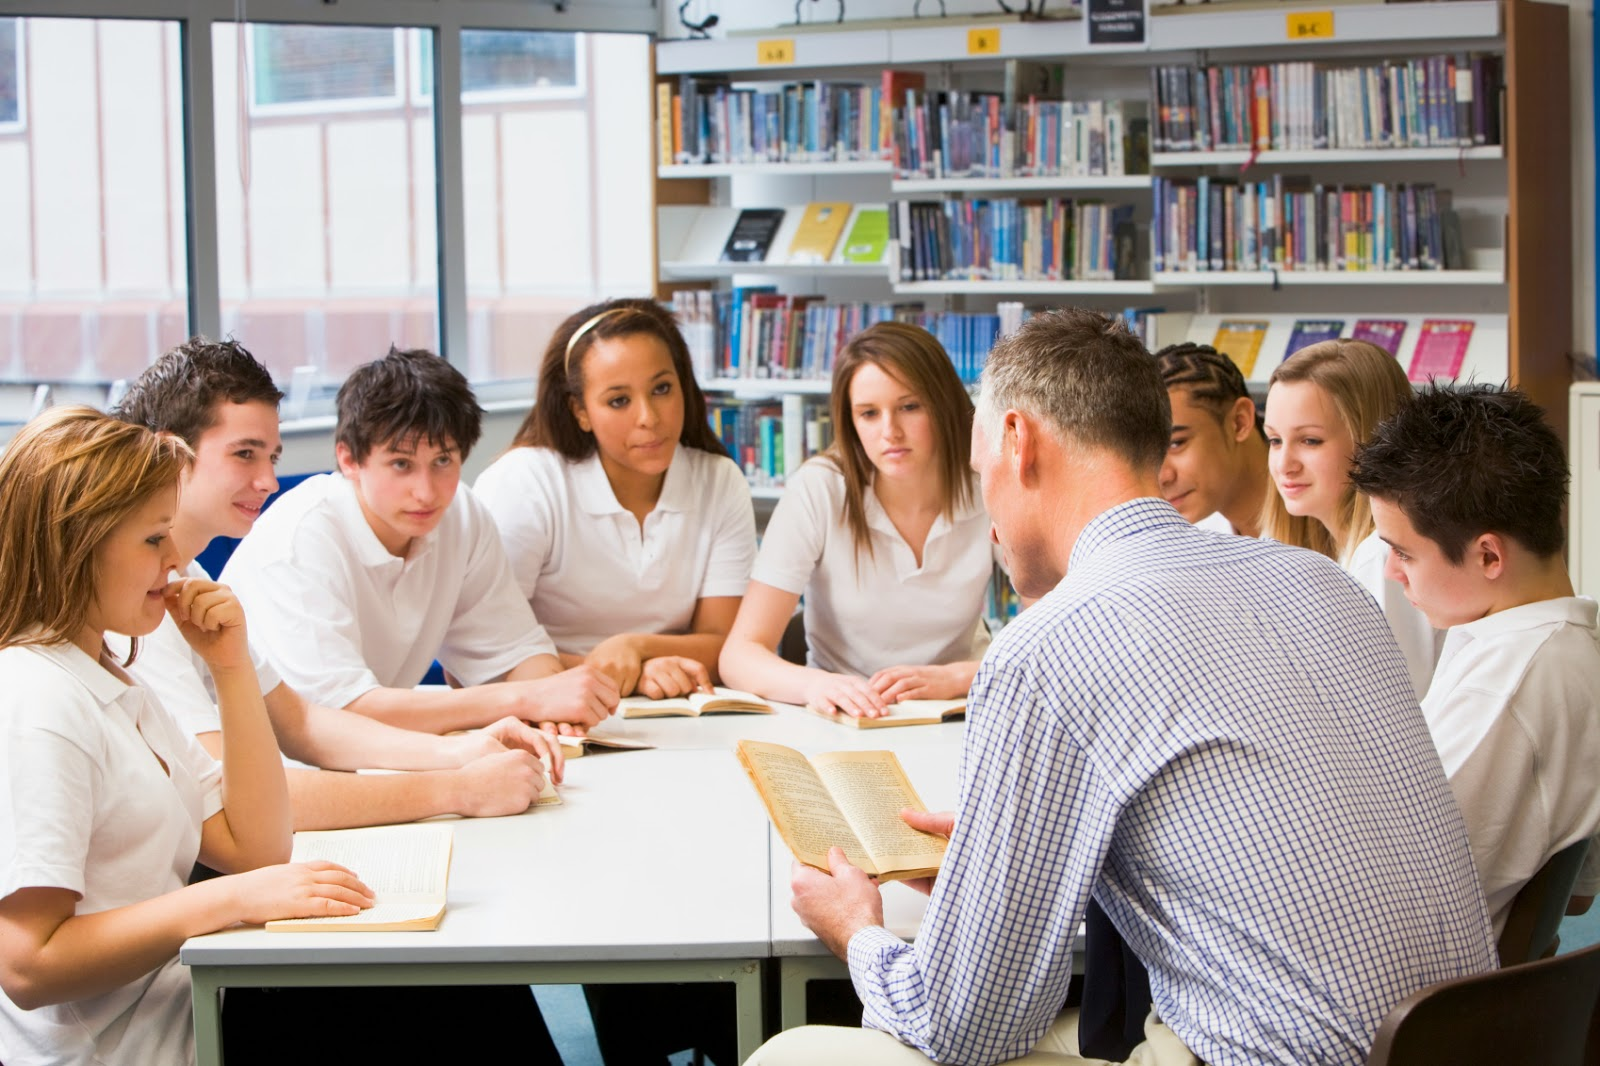 essay teacher student relationship Free essay: teachers and their students have a special relationship what they do affects each other teachers and students can't survive without one another.